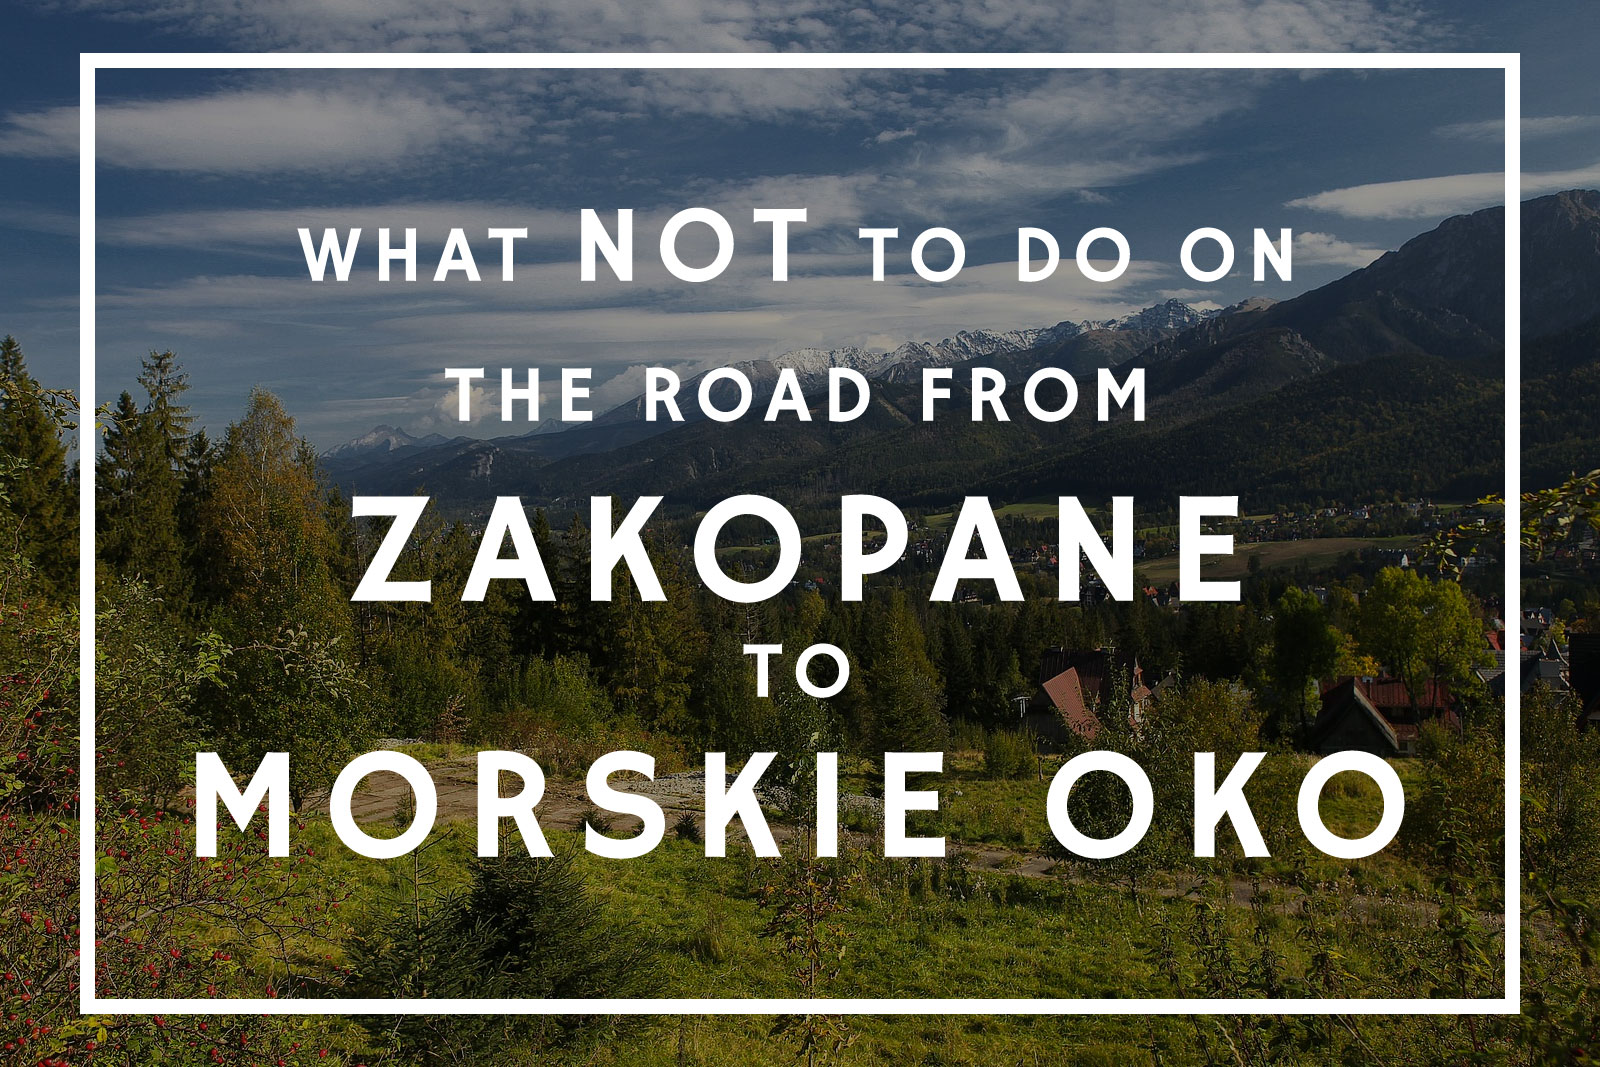 The Road From Zakopane to Morskie Oko: A Complete Guide of What Not to Do